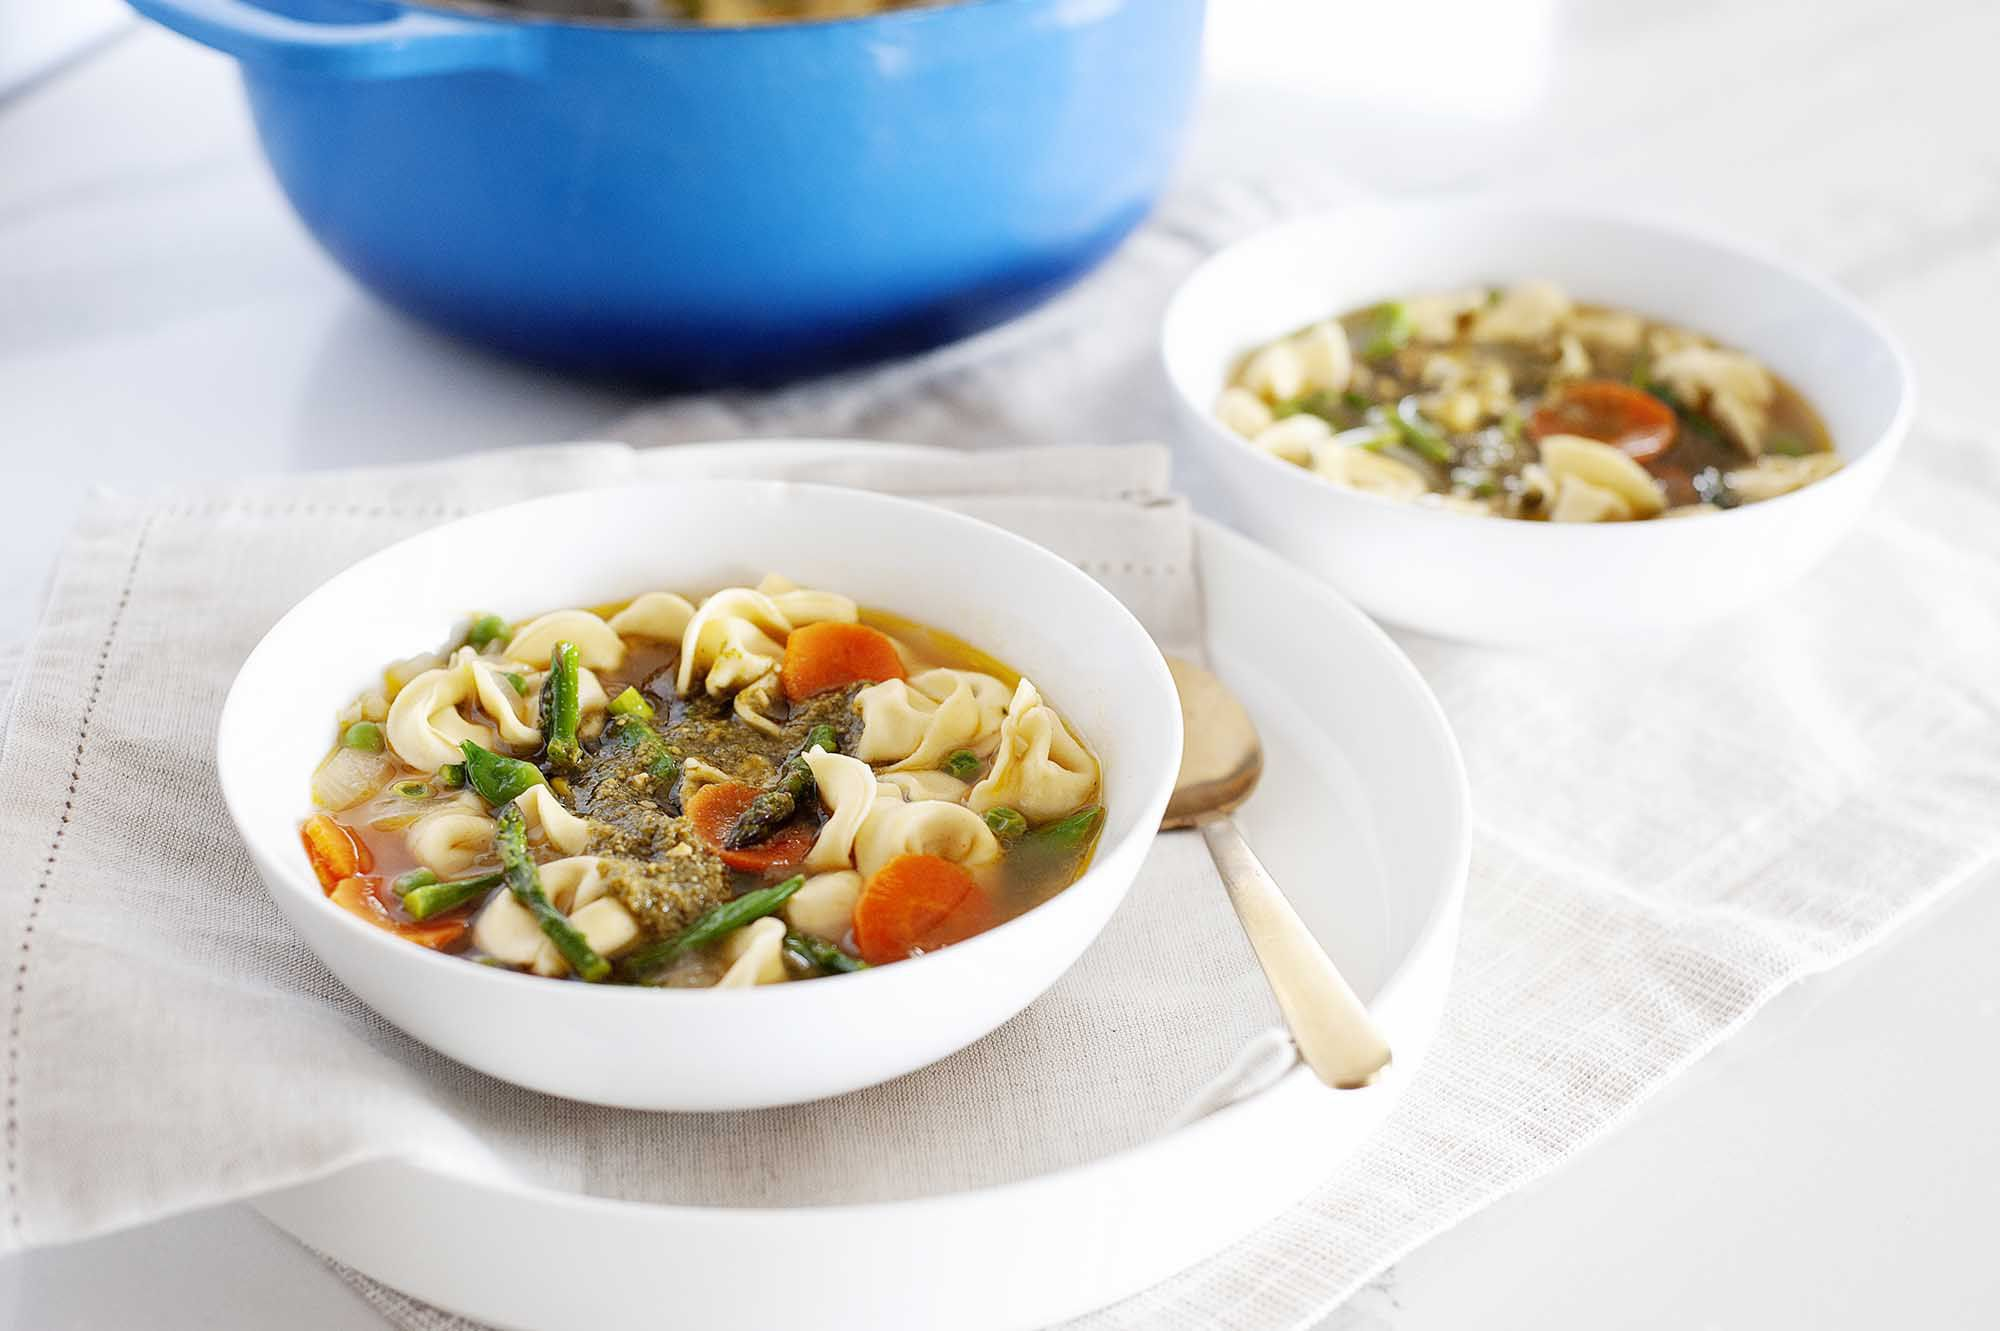 Pesto and tortellini soup with vegetables. A second bowl is to the right and a blue dutch oven is above.